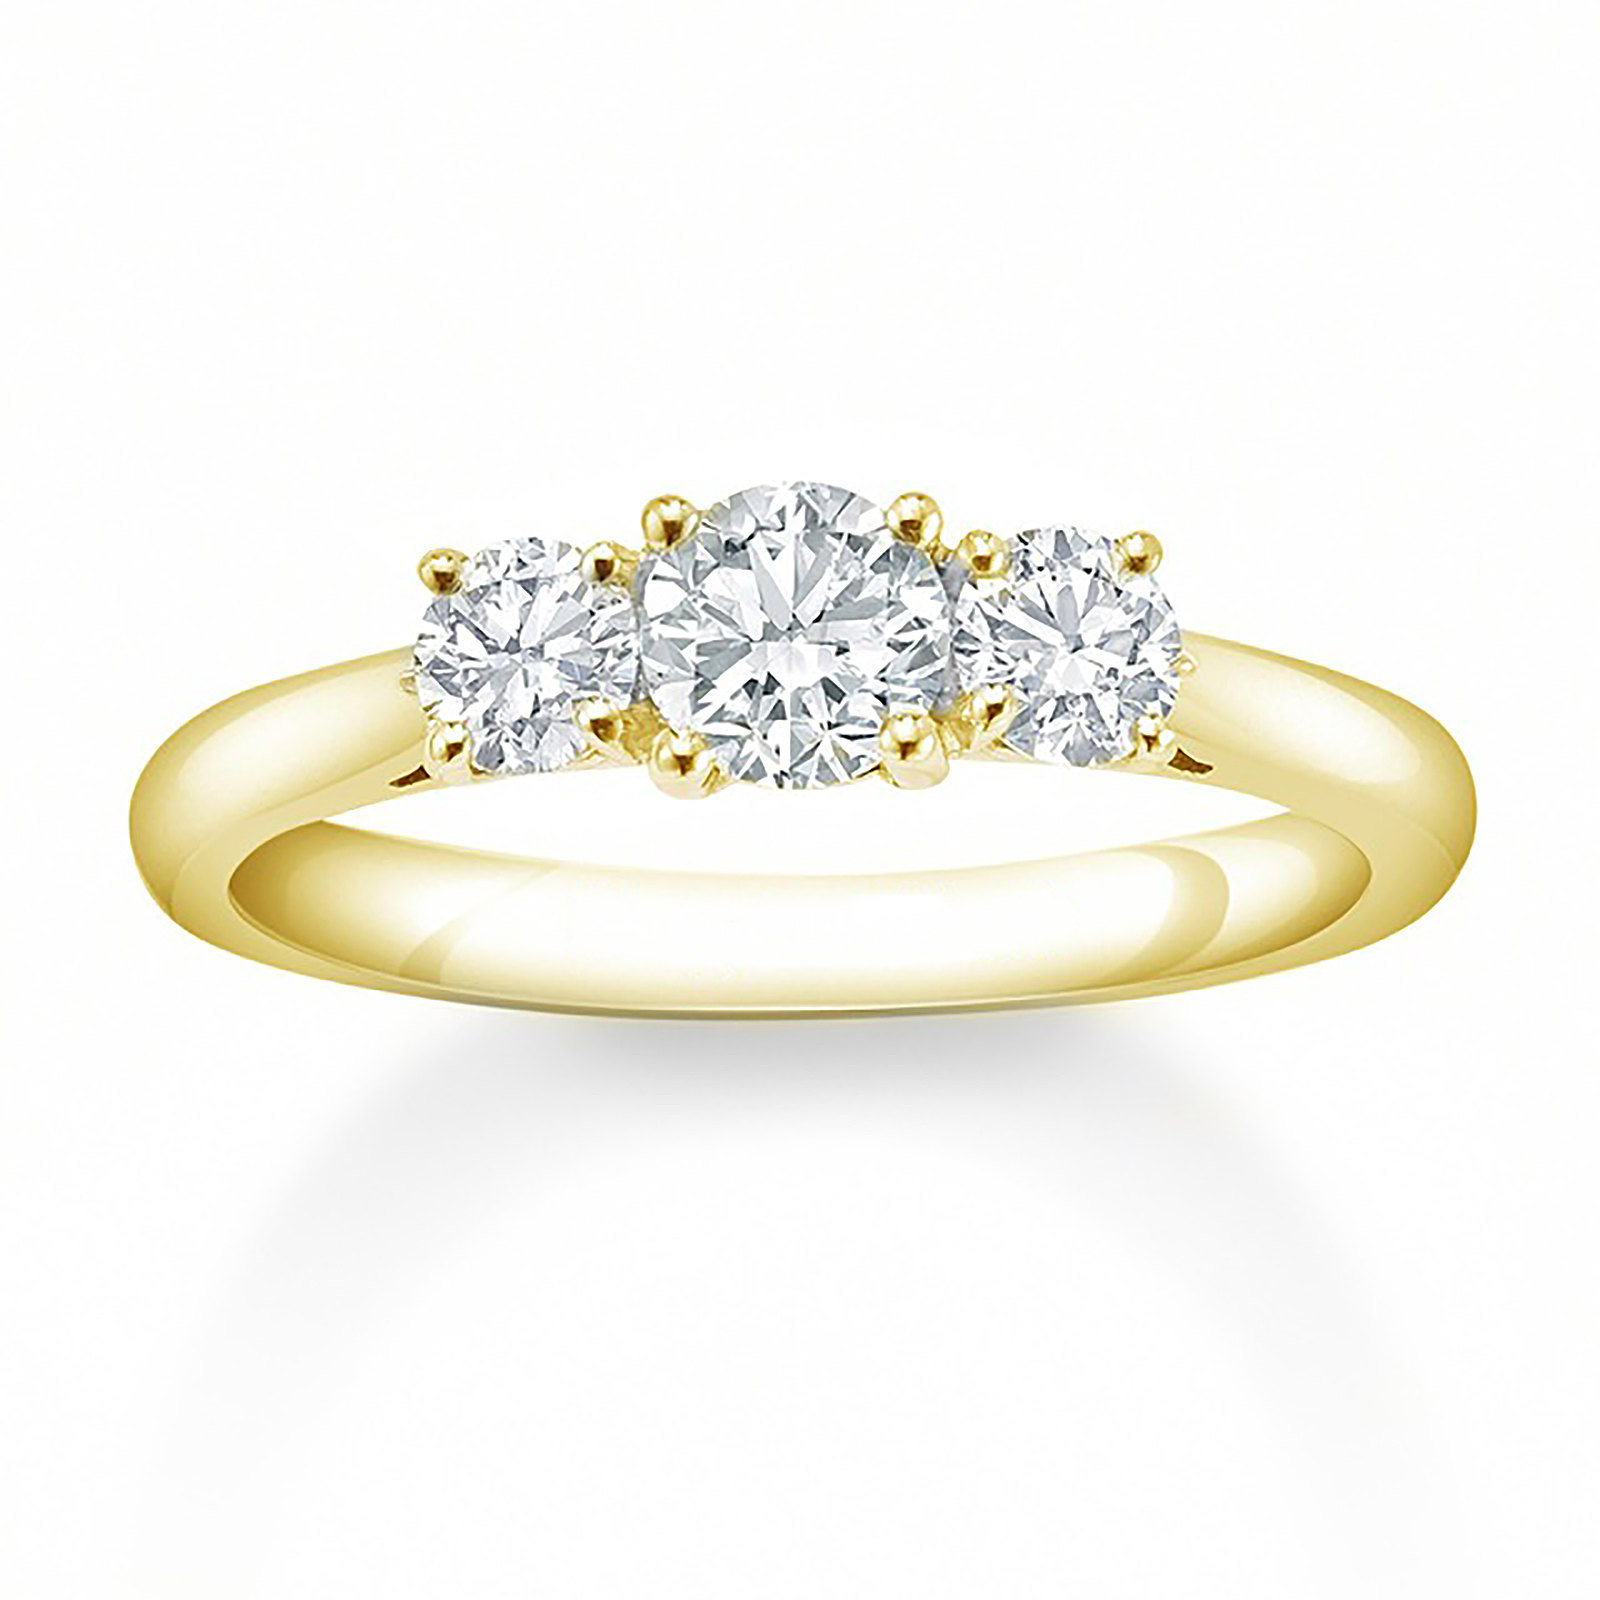 stone ring engagement white pear diamond fancy yellow gold jewellery princess shape